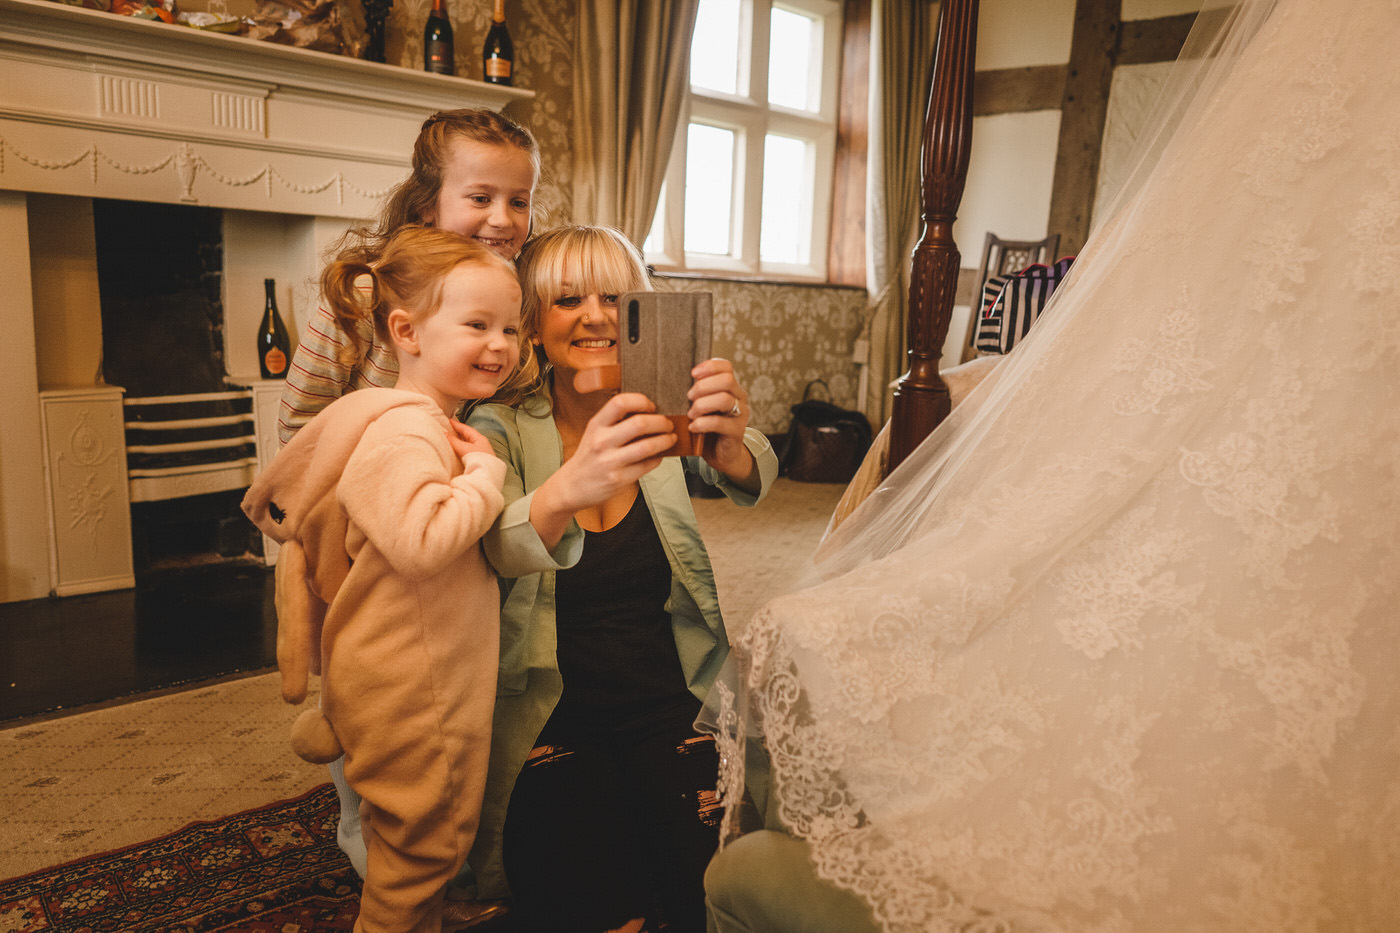 selfie time at soulton hall wedding in shropshire